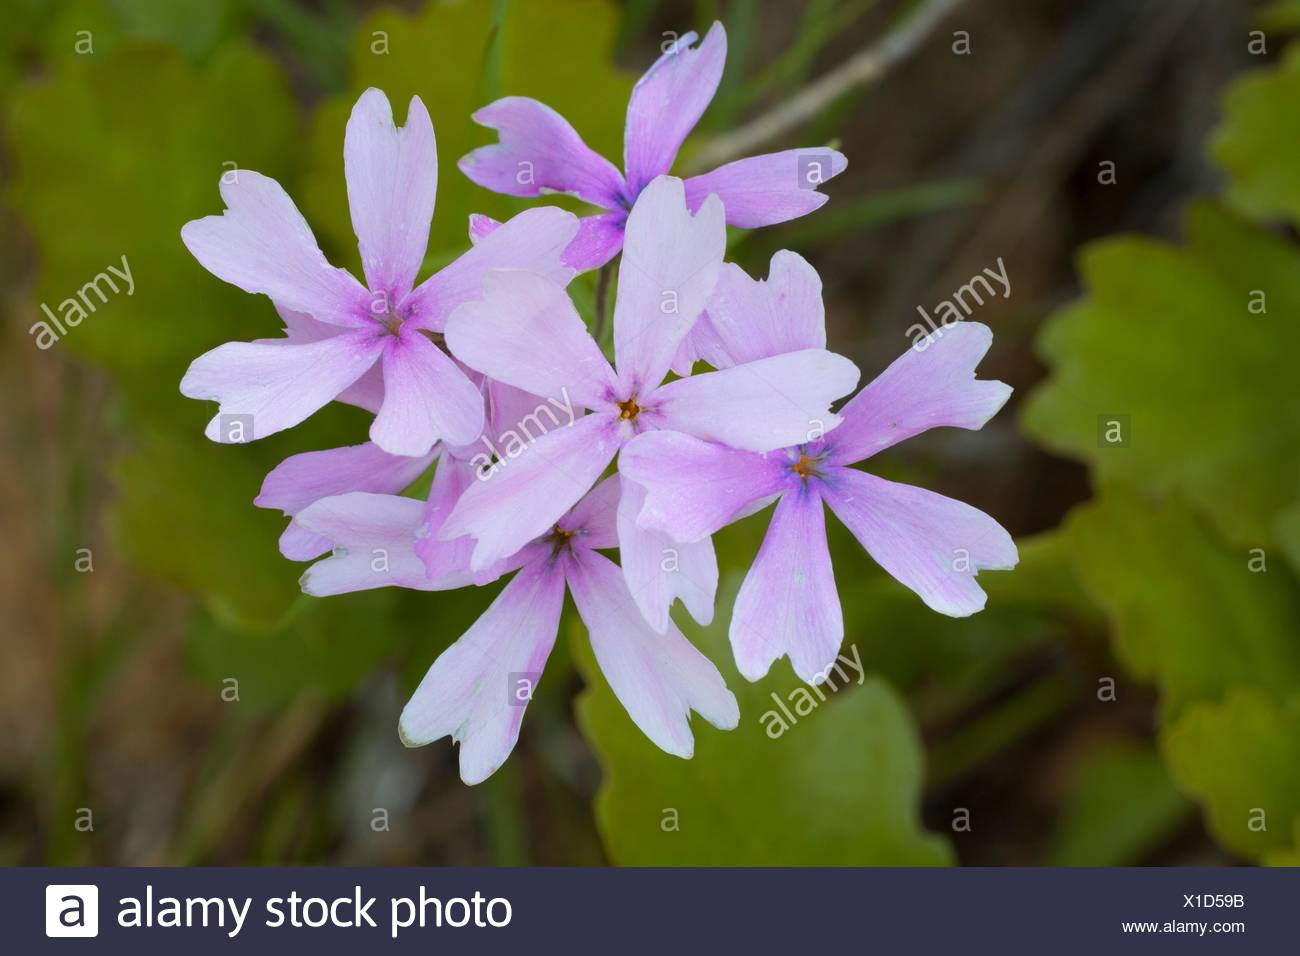 Wildflower, Illinois Wild and Scenic River, Siskiyou National Forest, Oregon. Stock Photo